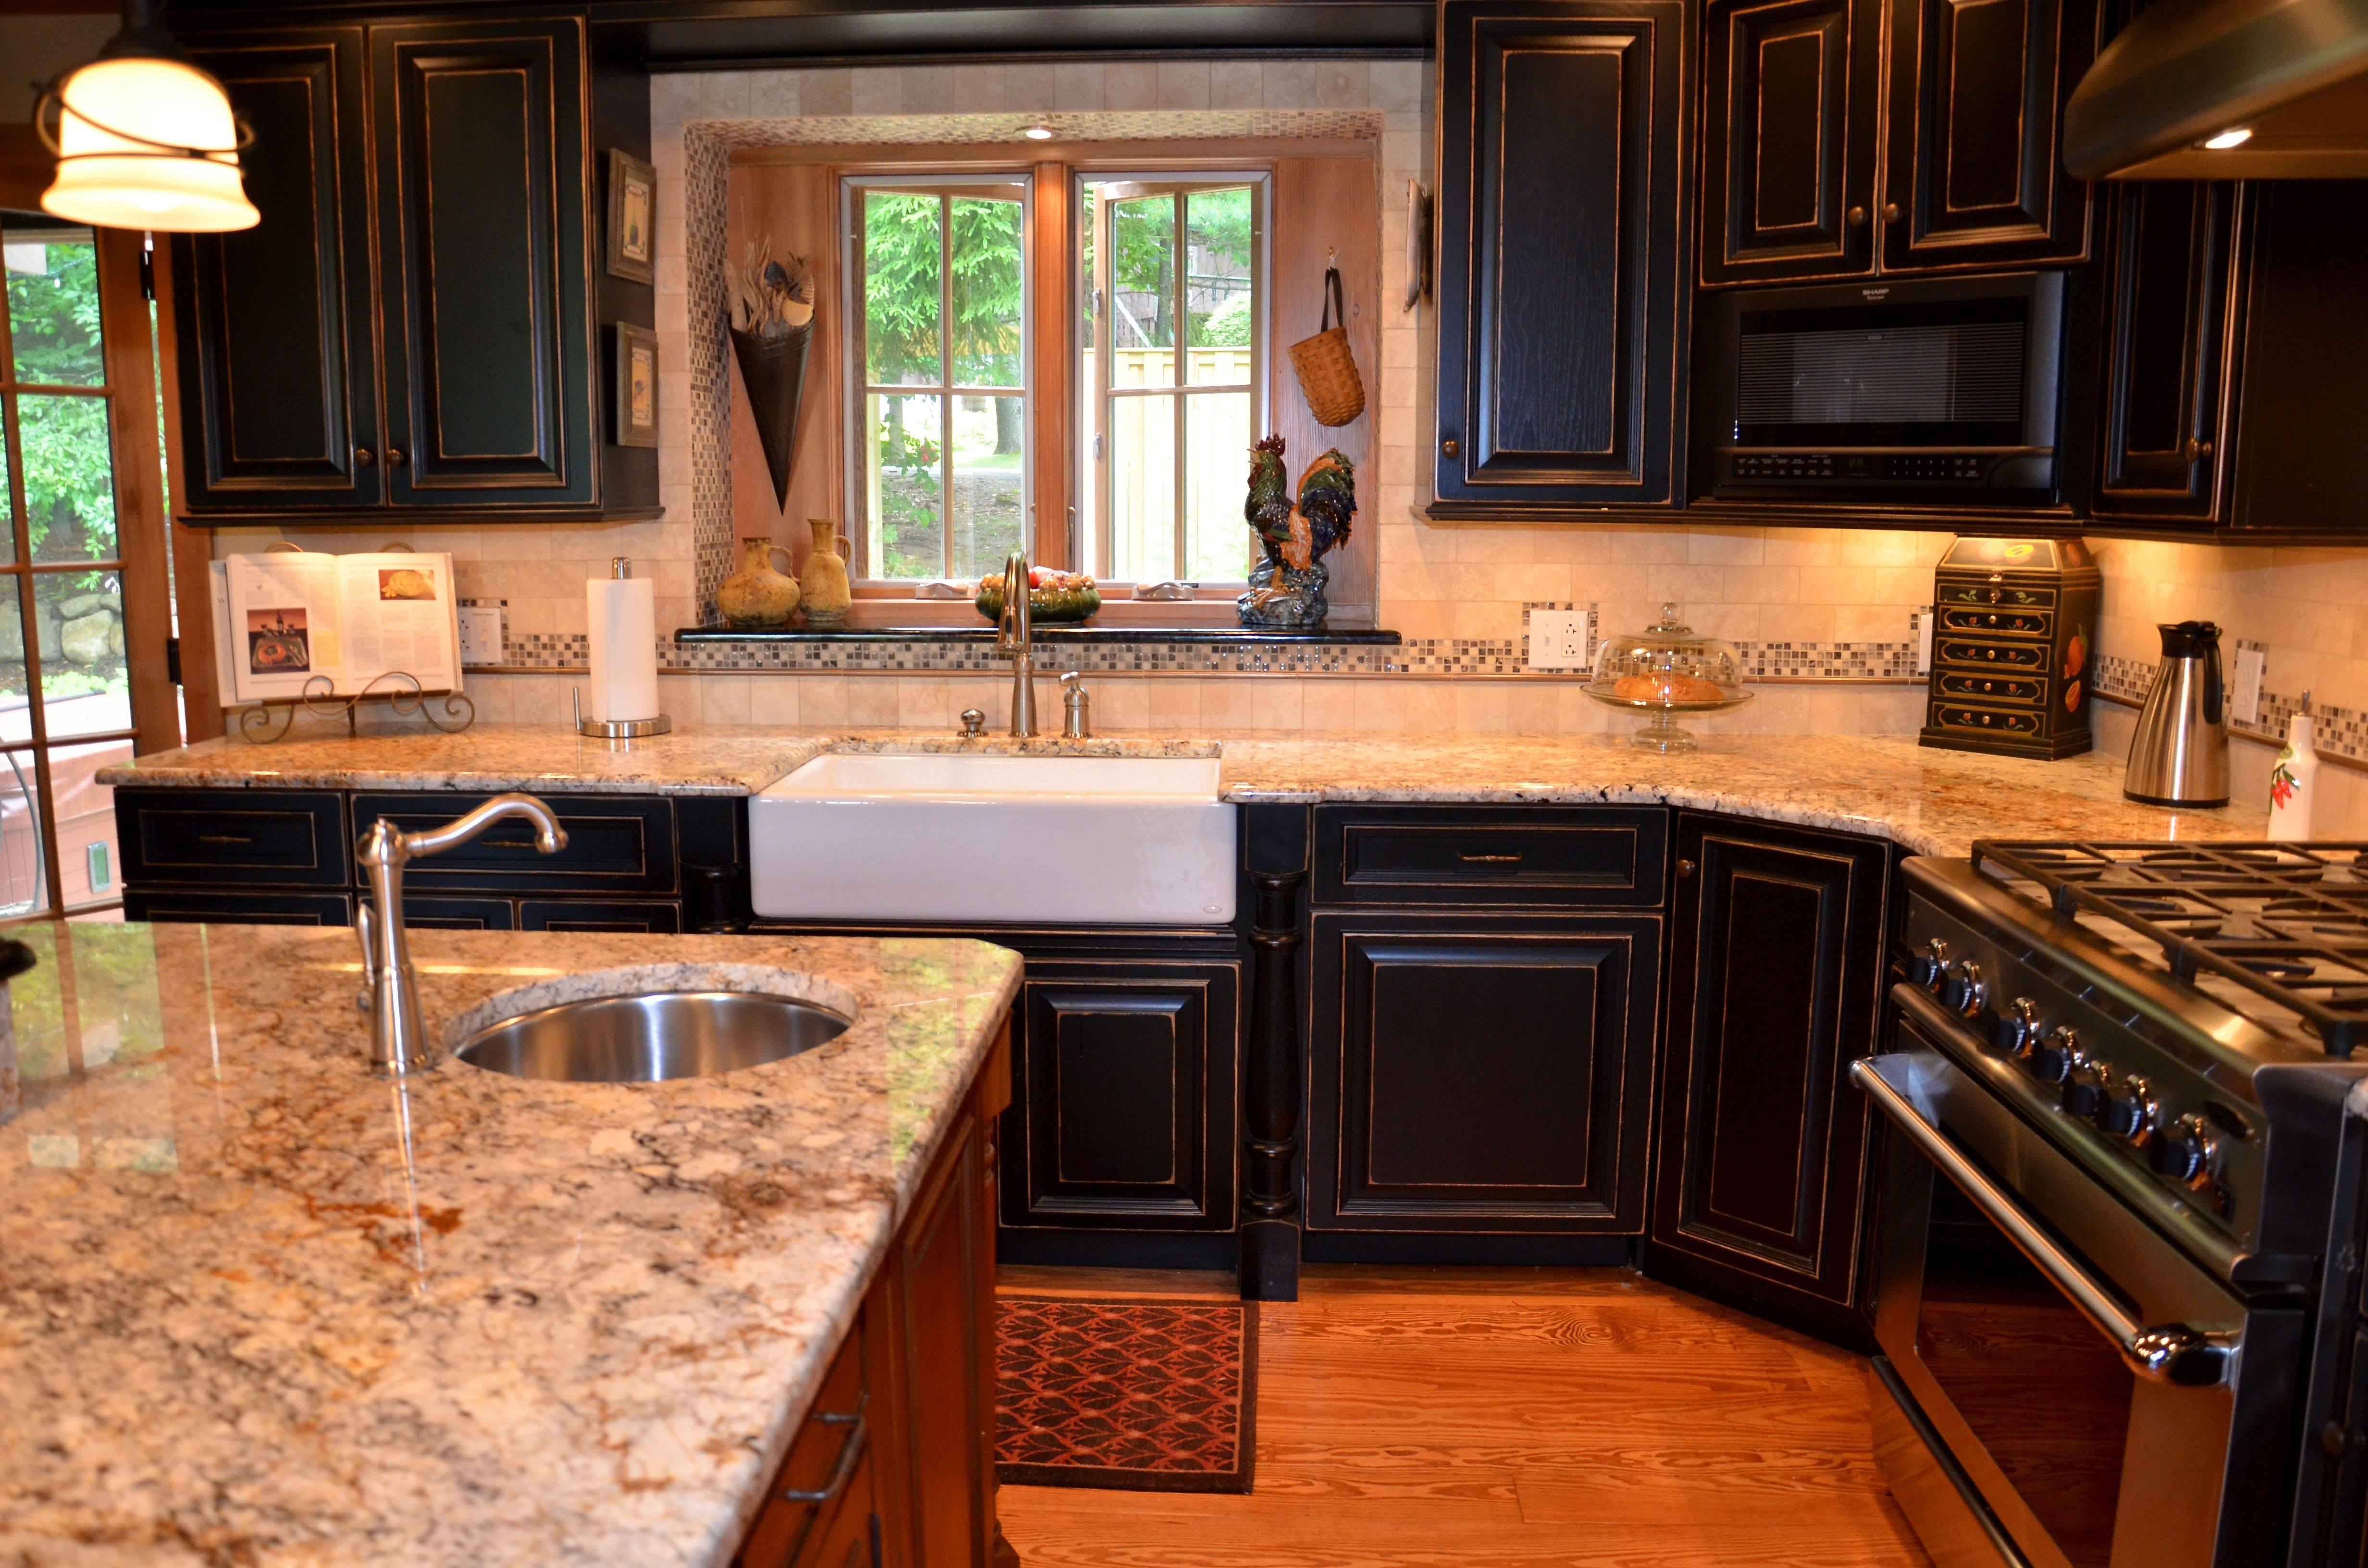 Gold & Silver Granite Countertop with black and